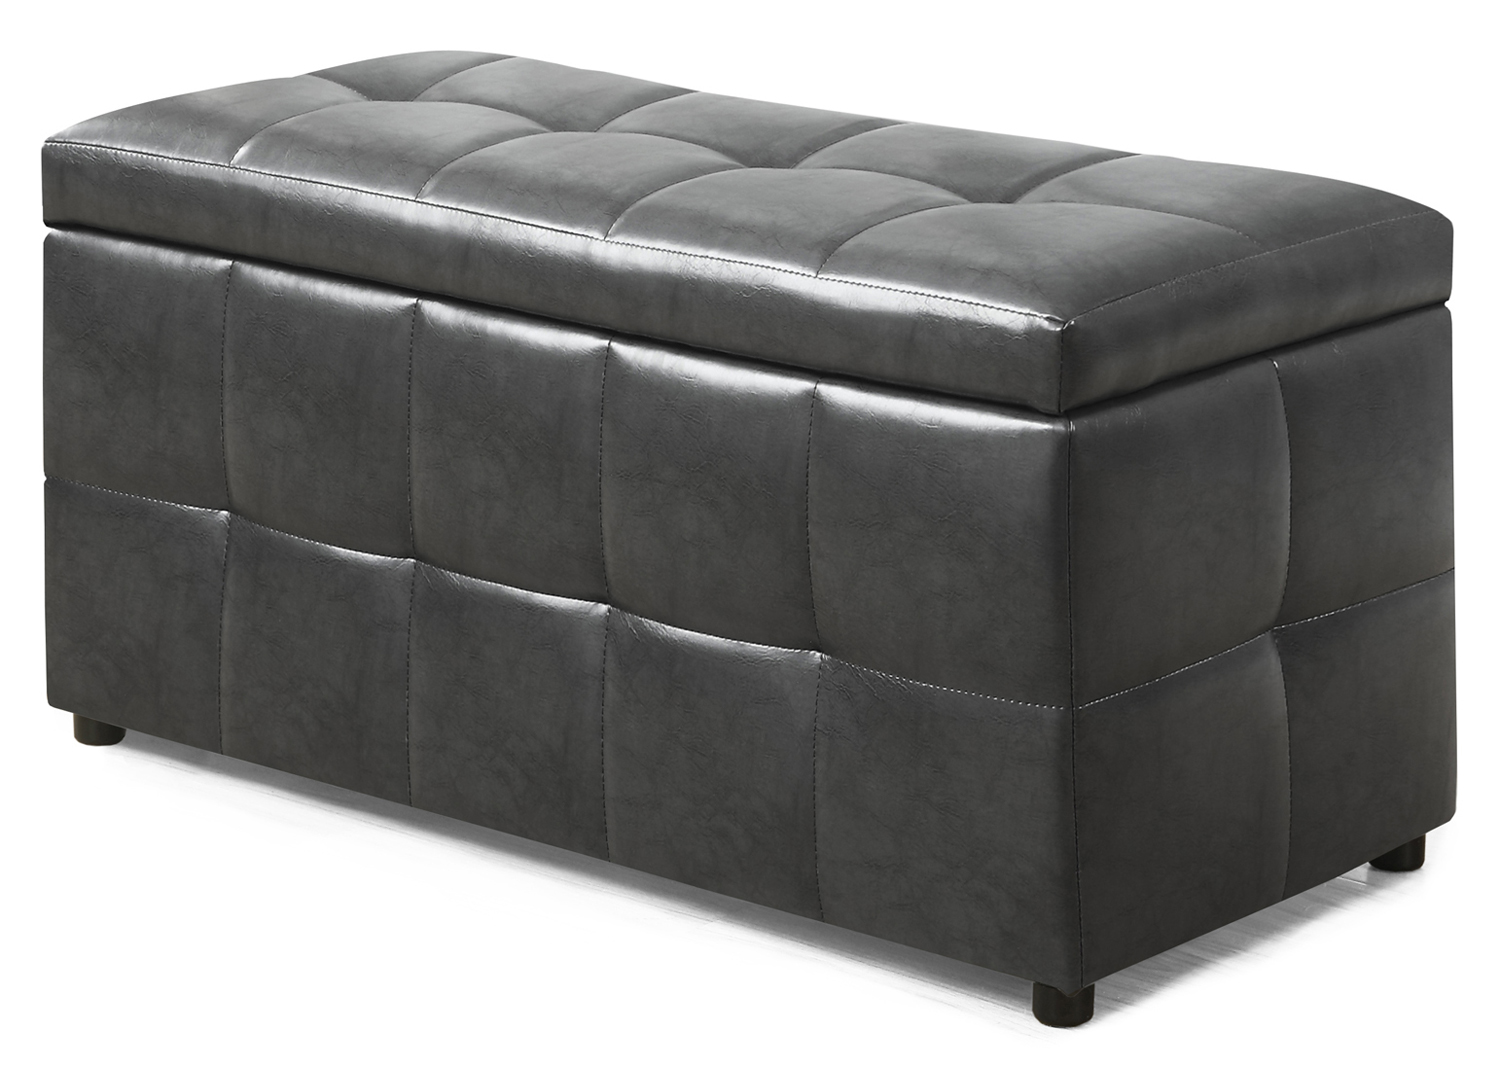 "38"" Leather-Look Ottoman with Flip Top Storage, Charcoal Gray"